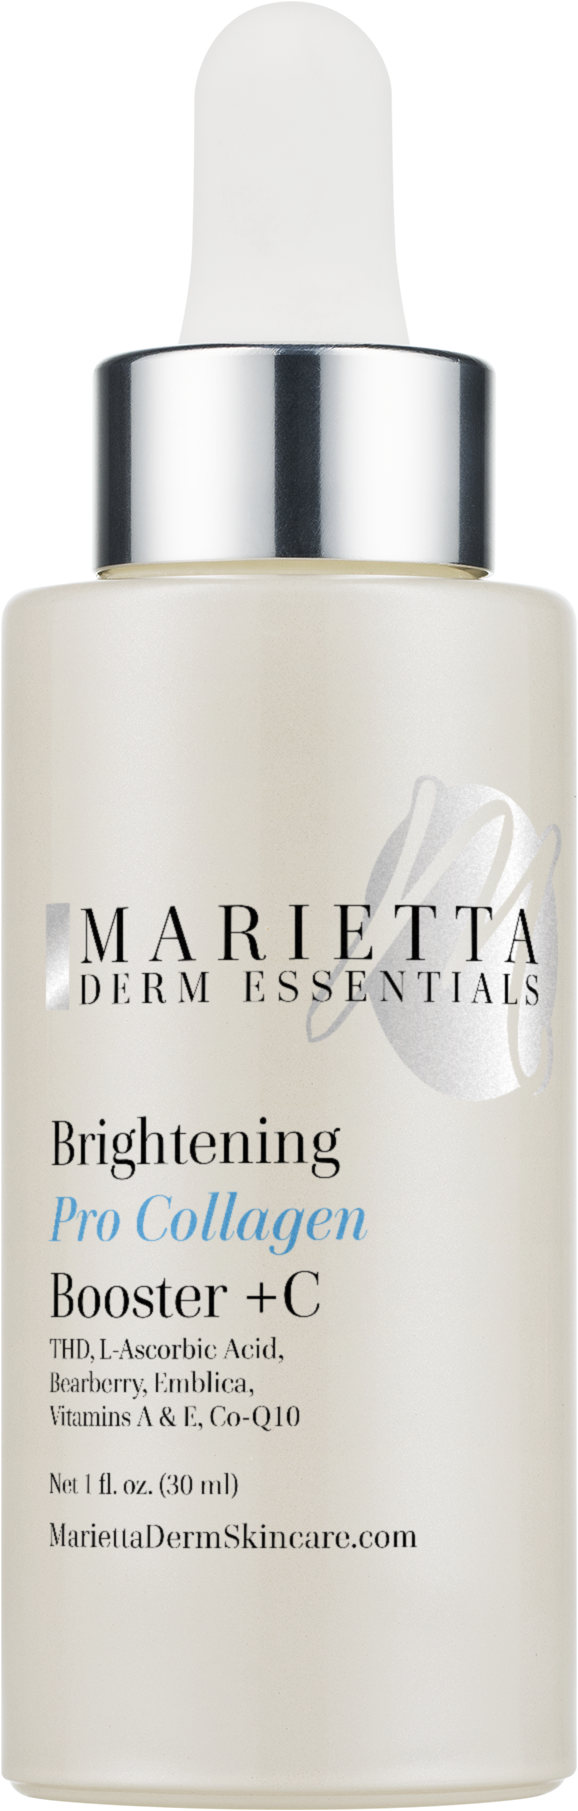 Brightening Pro-Collagen Booster +C